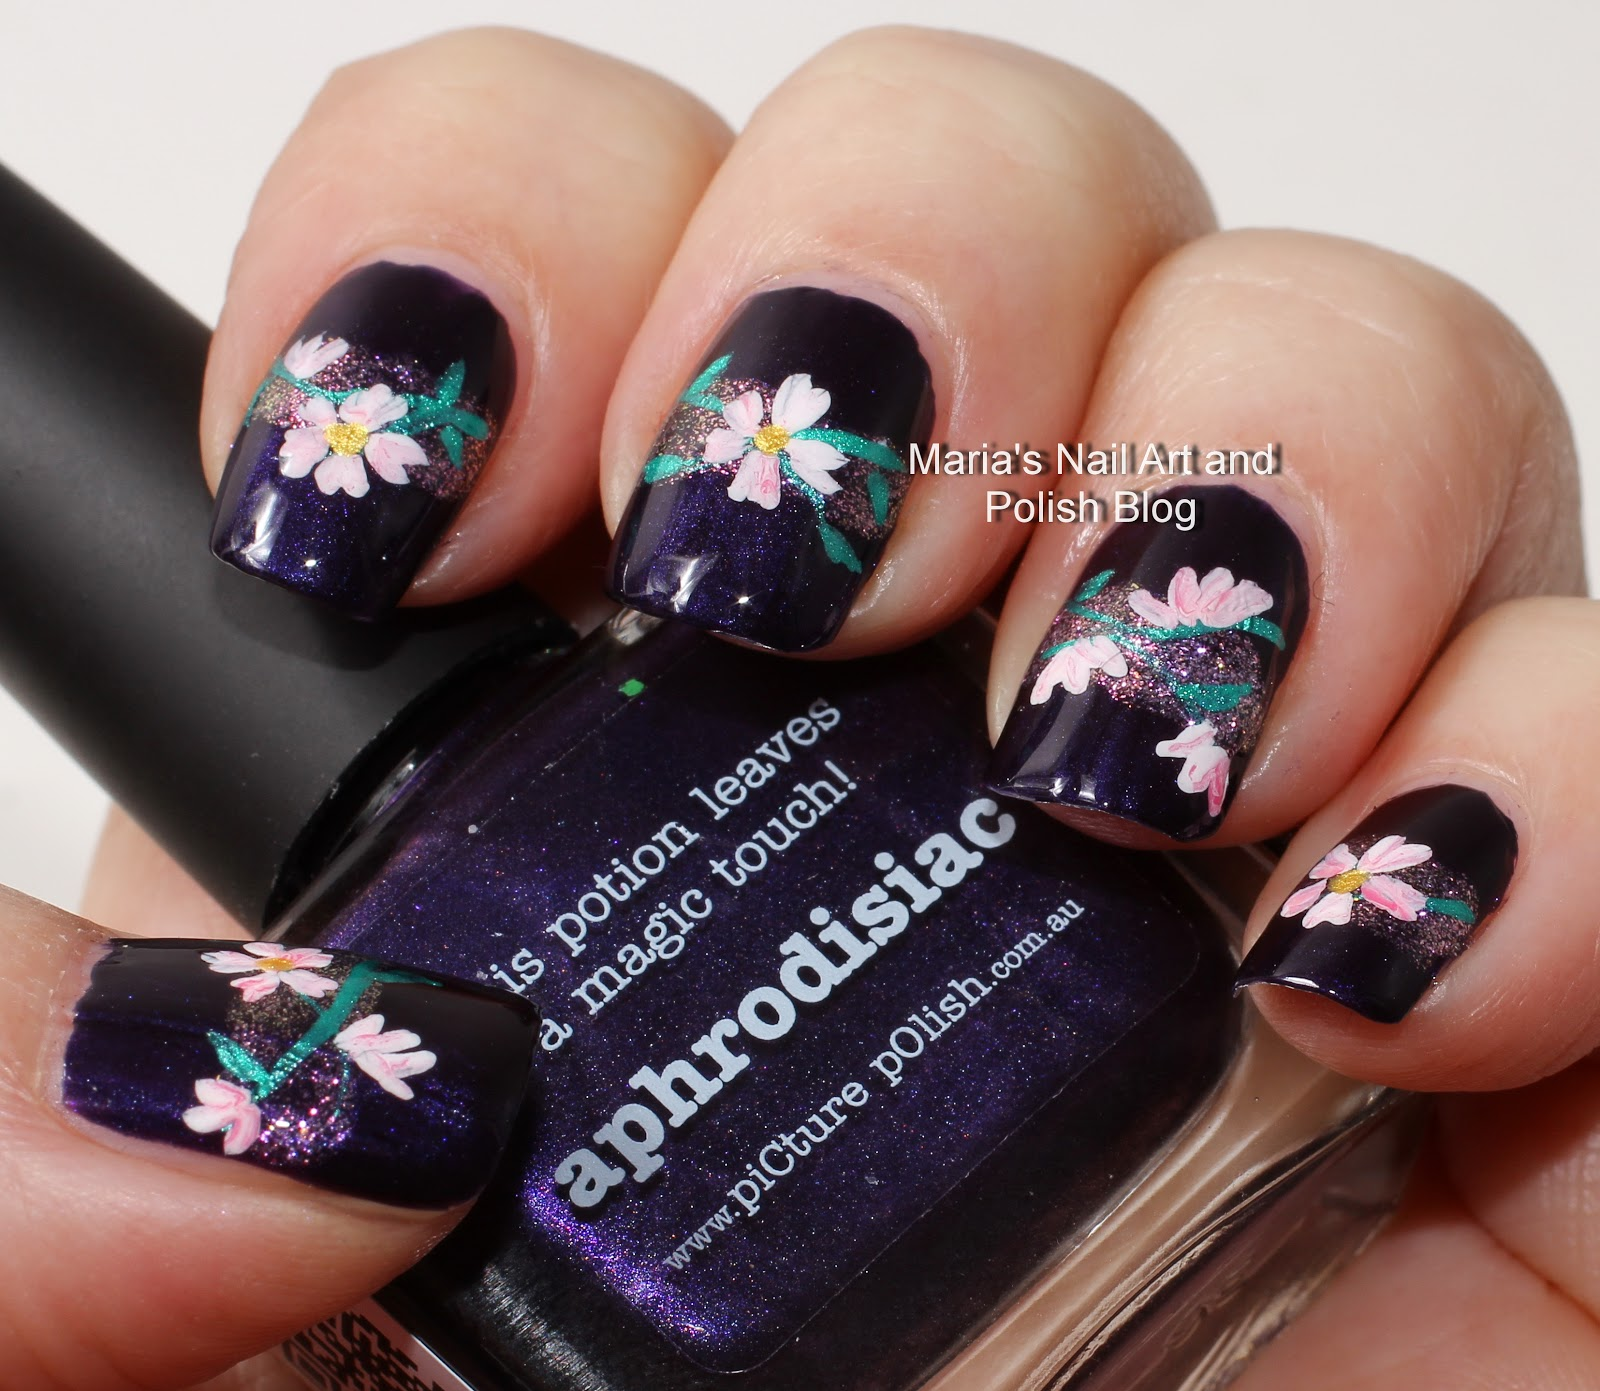 Marias Nail Art And Polish Blog Subtle Floral Nail Art On: Marias Nail Art And Polish Blog: Aphrodisiac Flowers